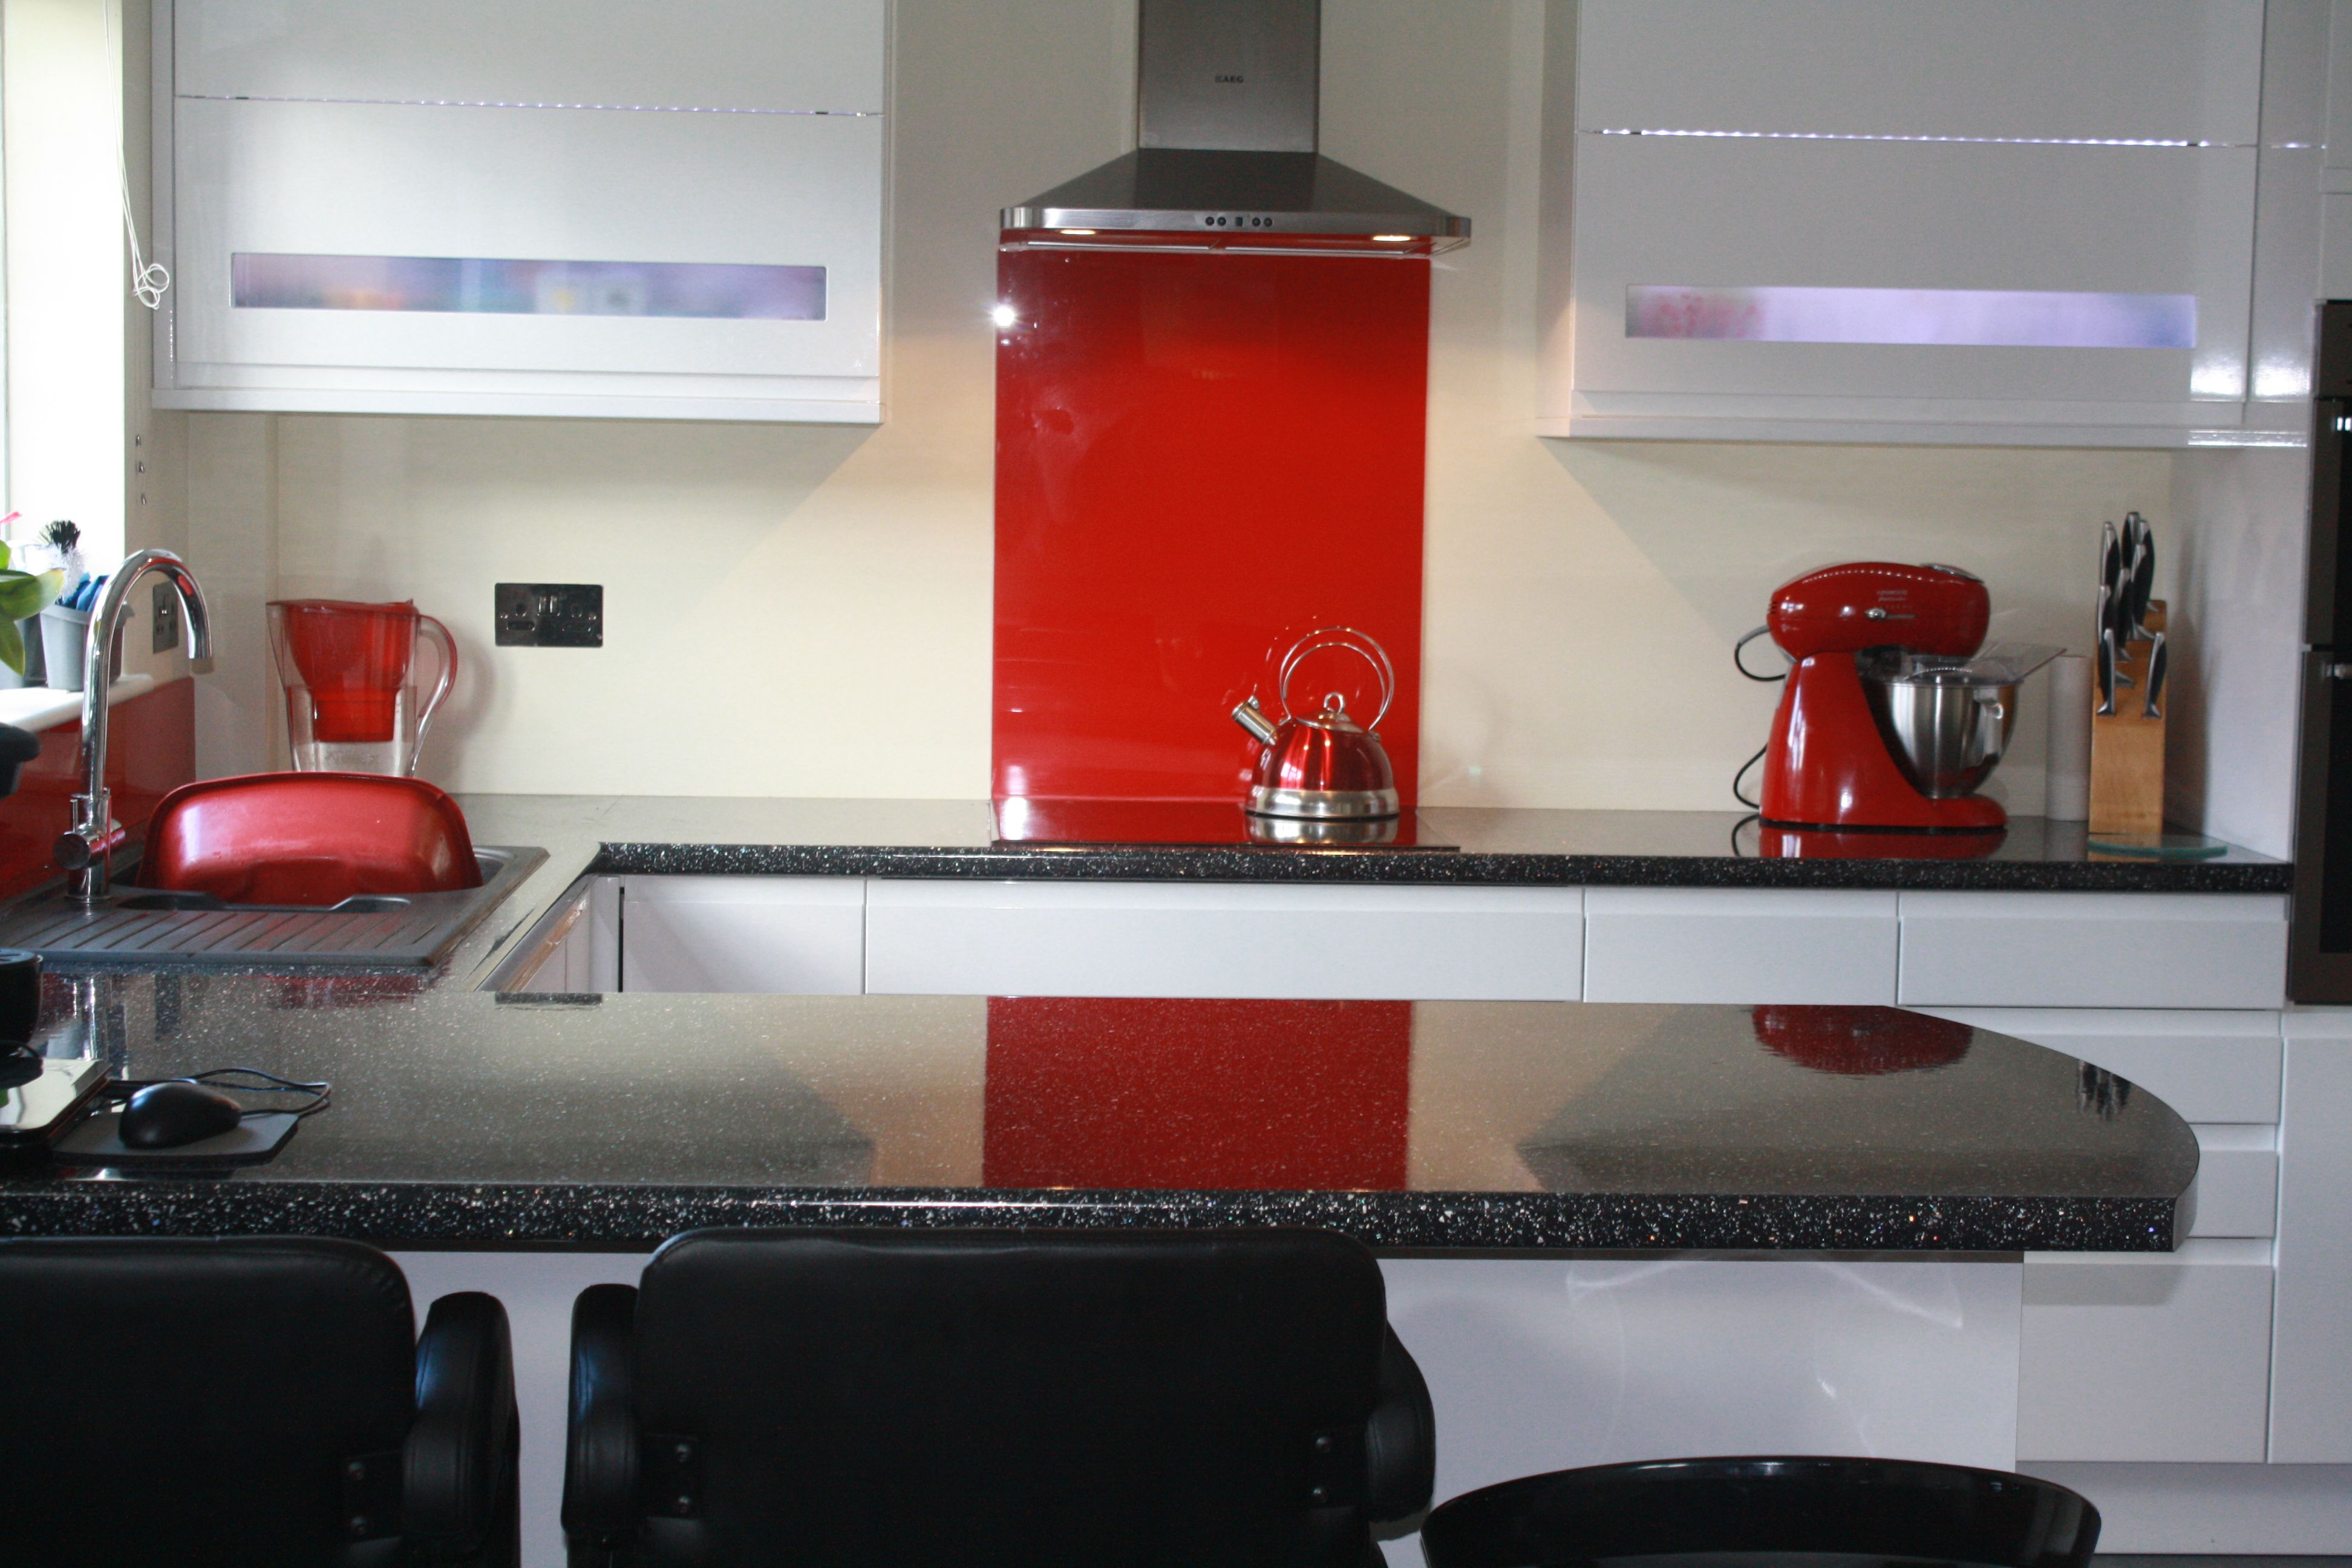 High Gloss Acrylic Kitchen Cabinets Remodels Before And After A Bright Red Splashback With